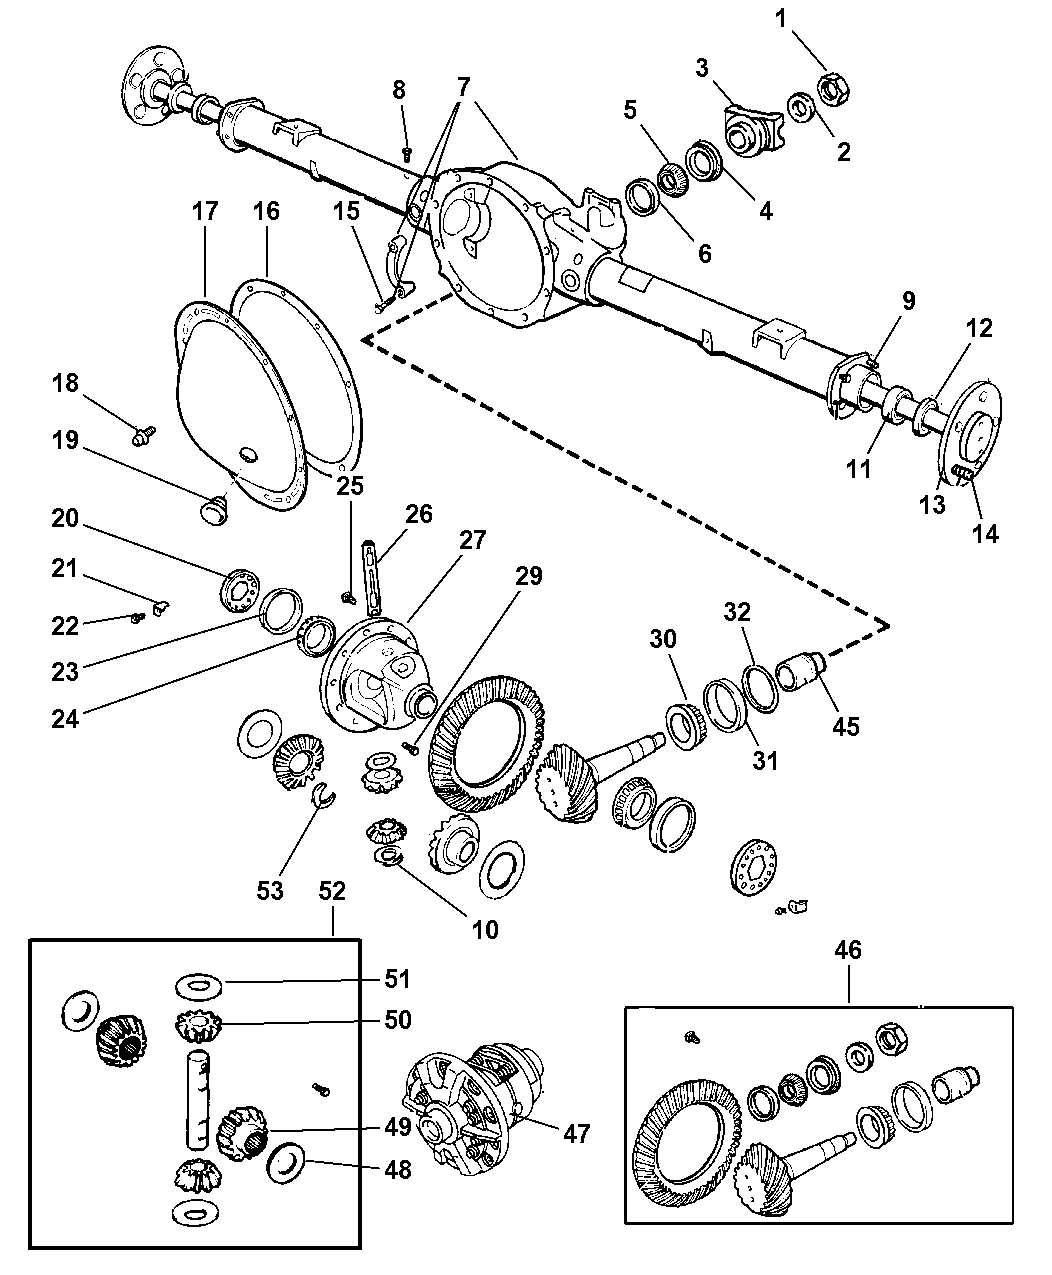 2002 Dodge Dakota Axle, Rear, With Differential And Housing